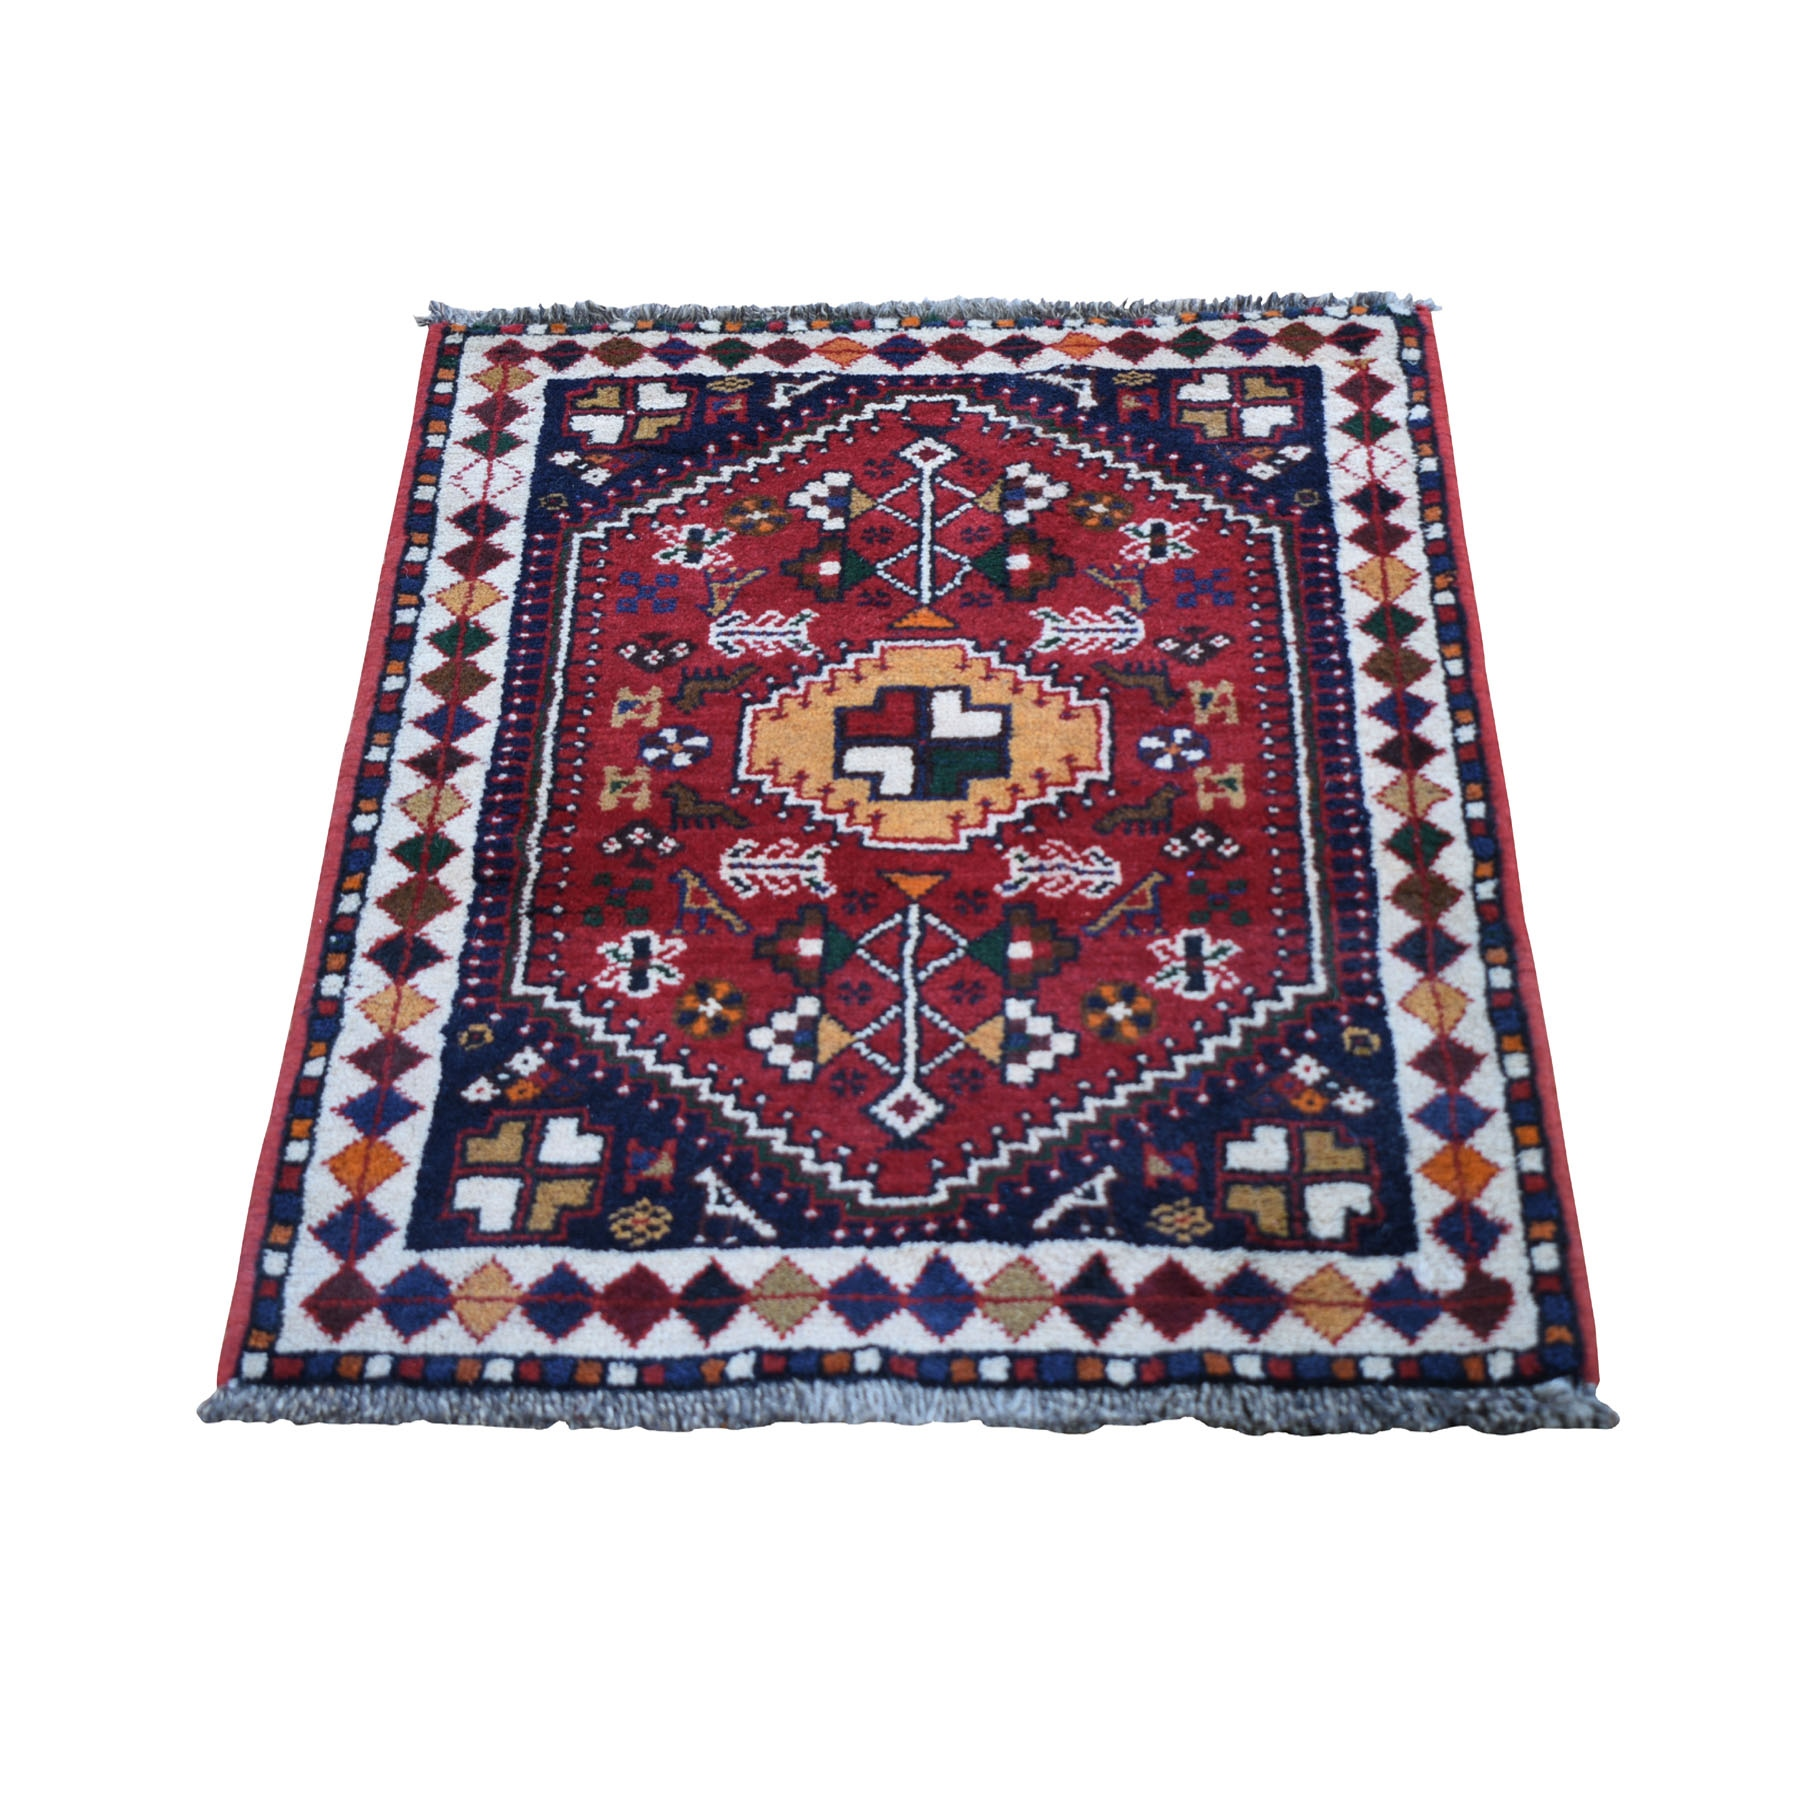 "2'3""x3' Red New Persian Shiraz With Figurines Hand Woven Pure Wool Small Bohemian Rug"